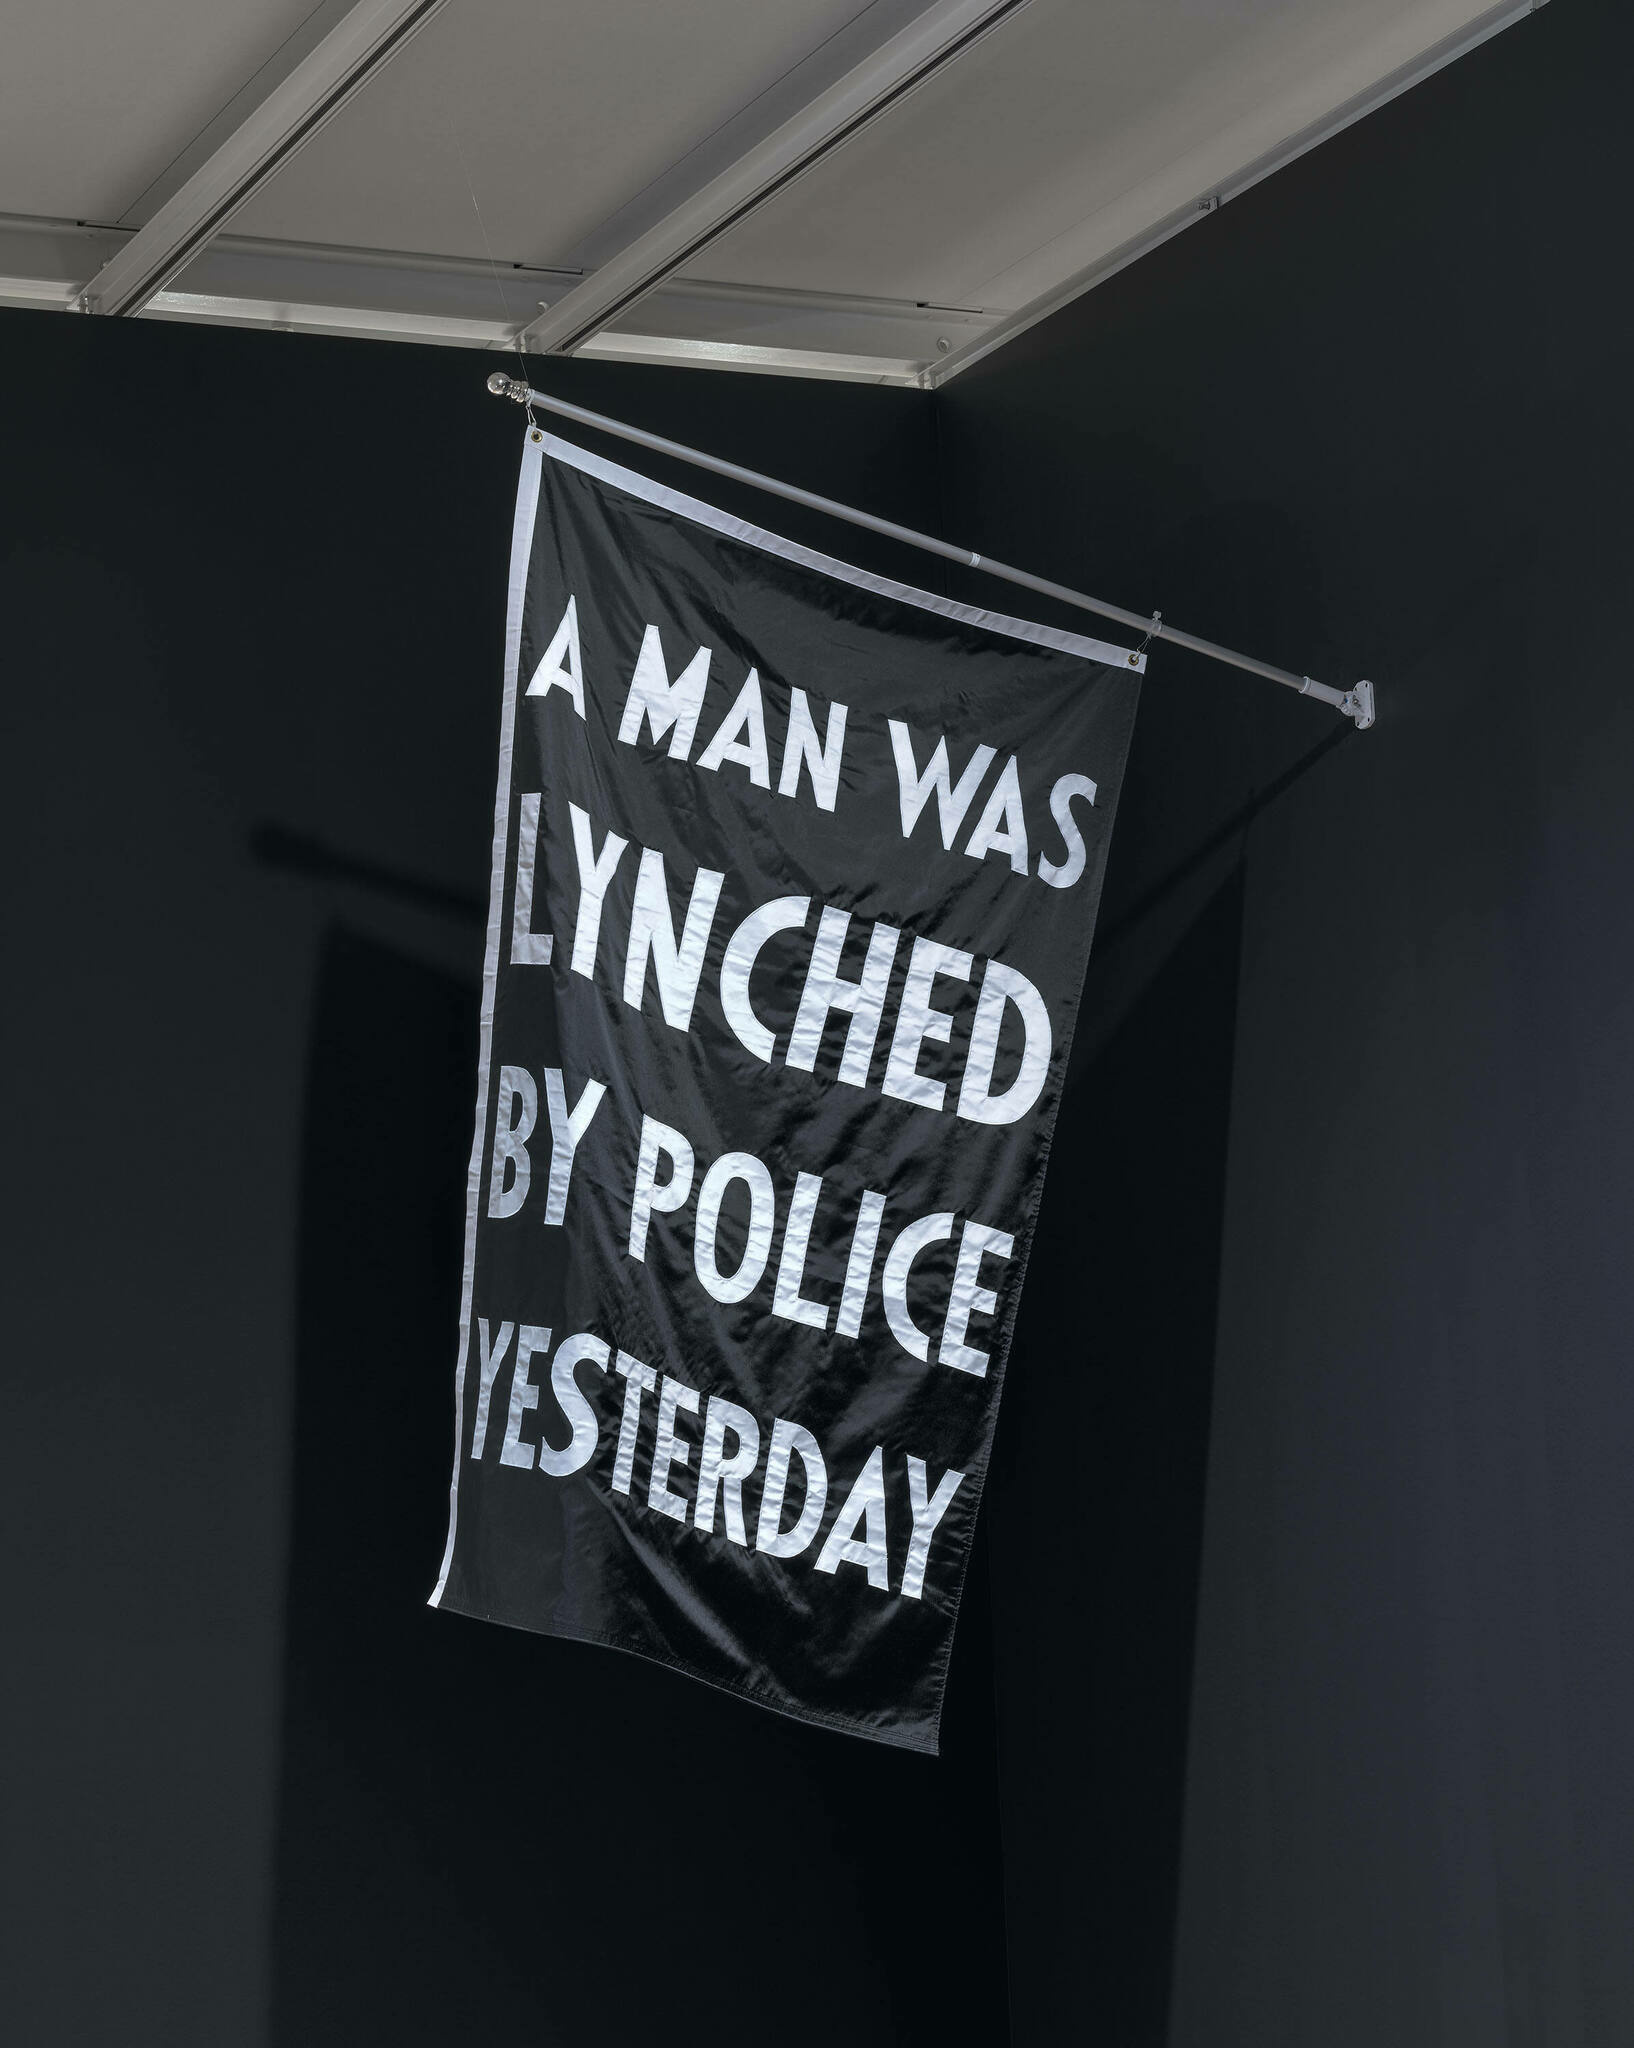 A black flag with white words reading A MAN WAS LYNCHED BY POLICE YESTERDAY.